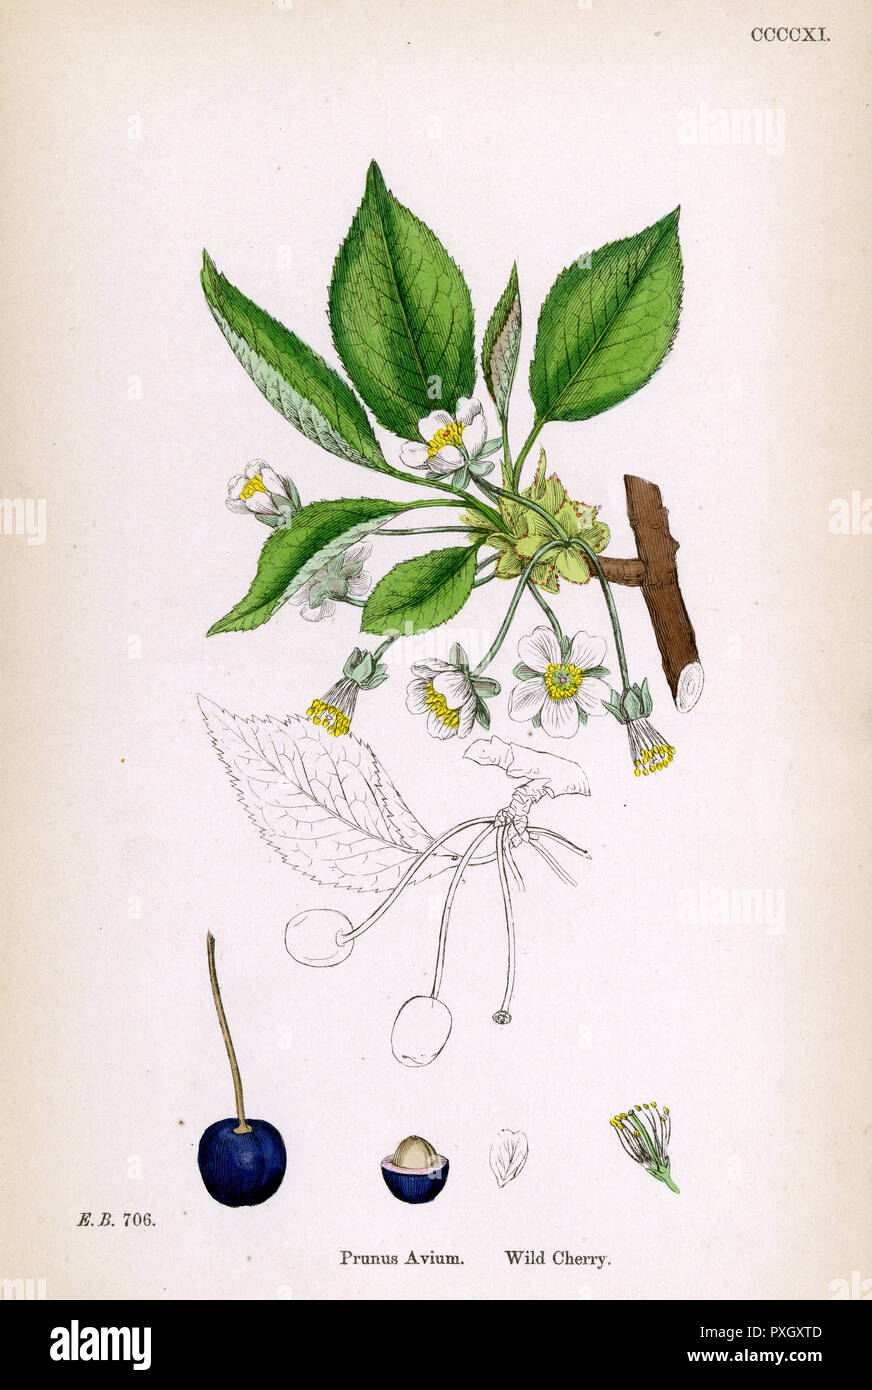 A sprig of wild cherry blossom(Prunus Avium),depicting the fruit and stone.     Date: 1869 - Stock Image